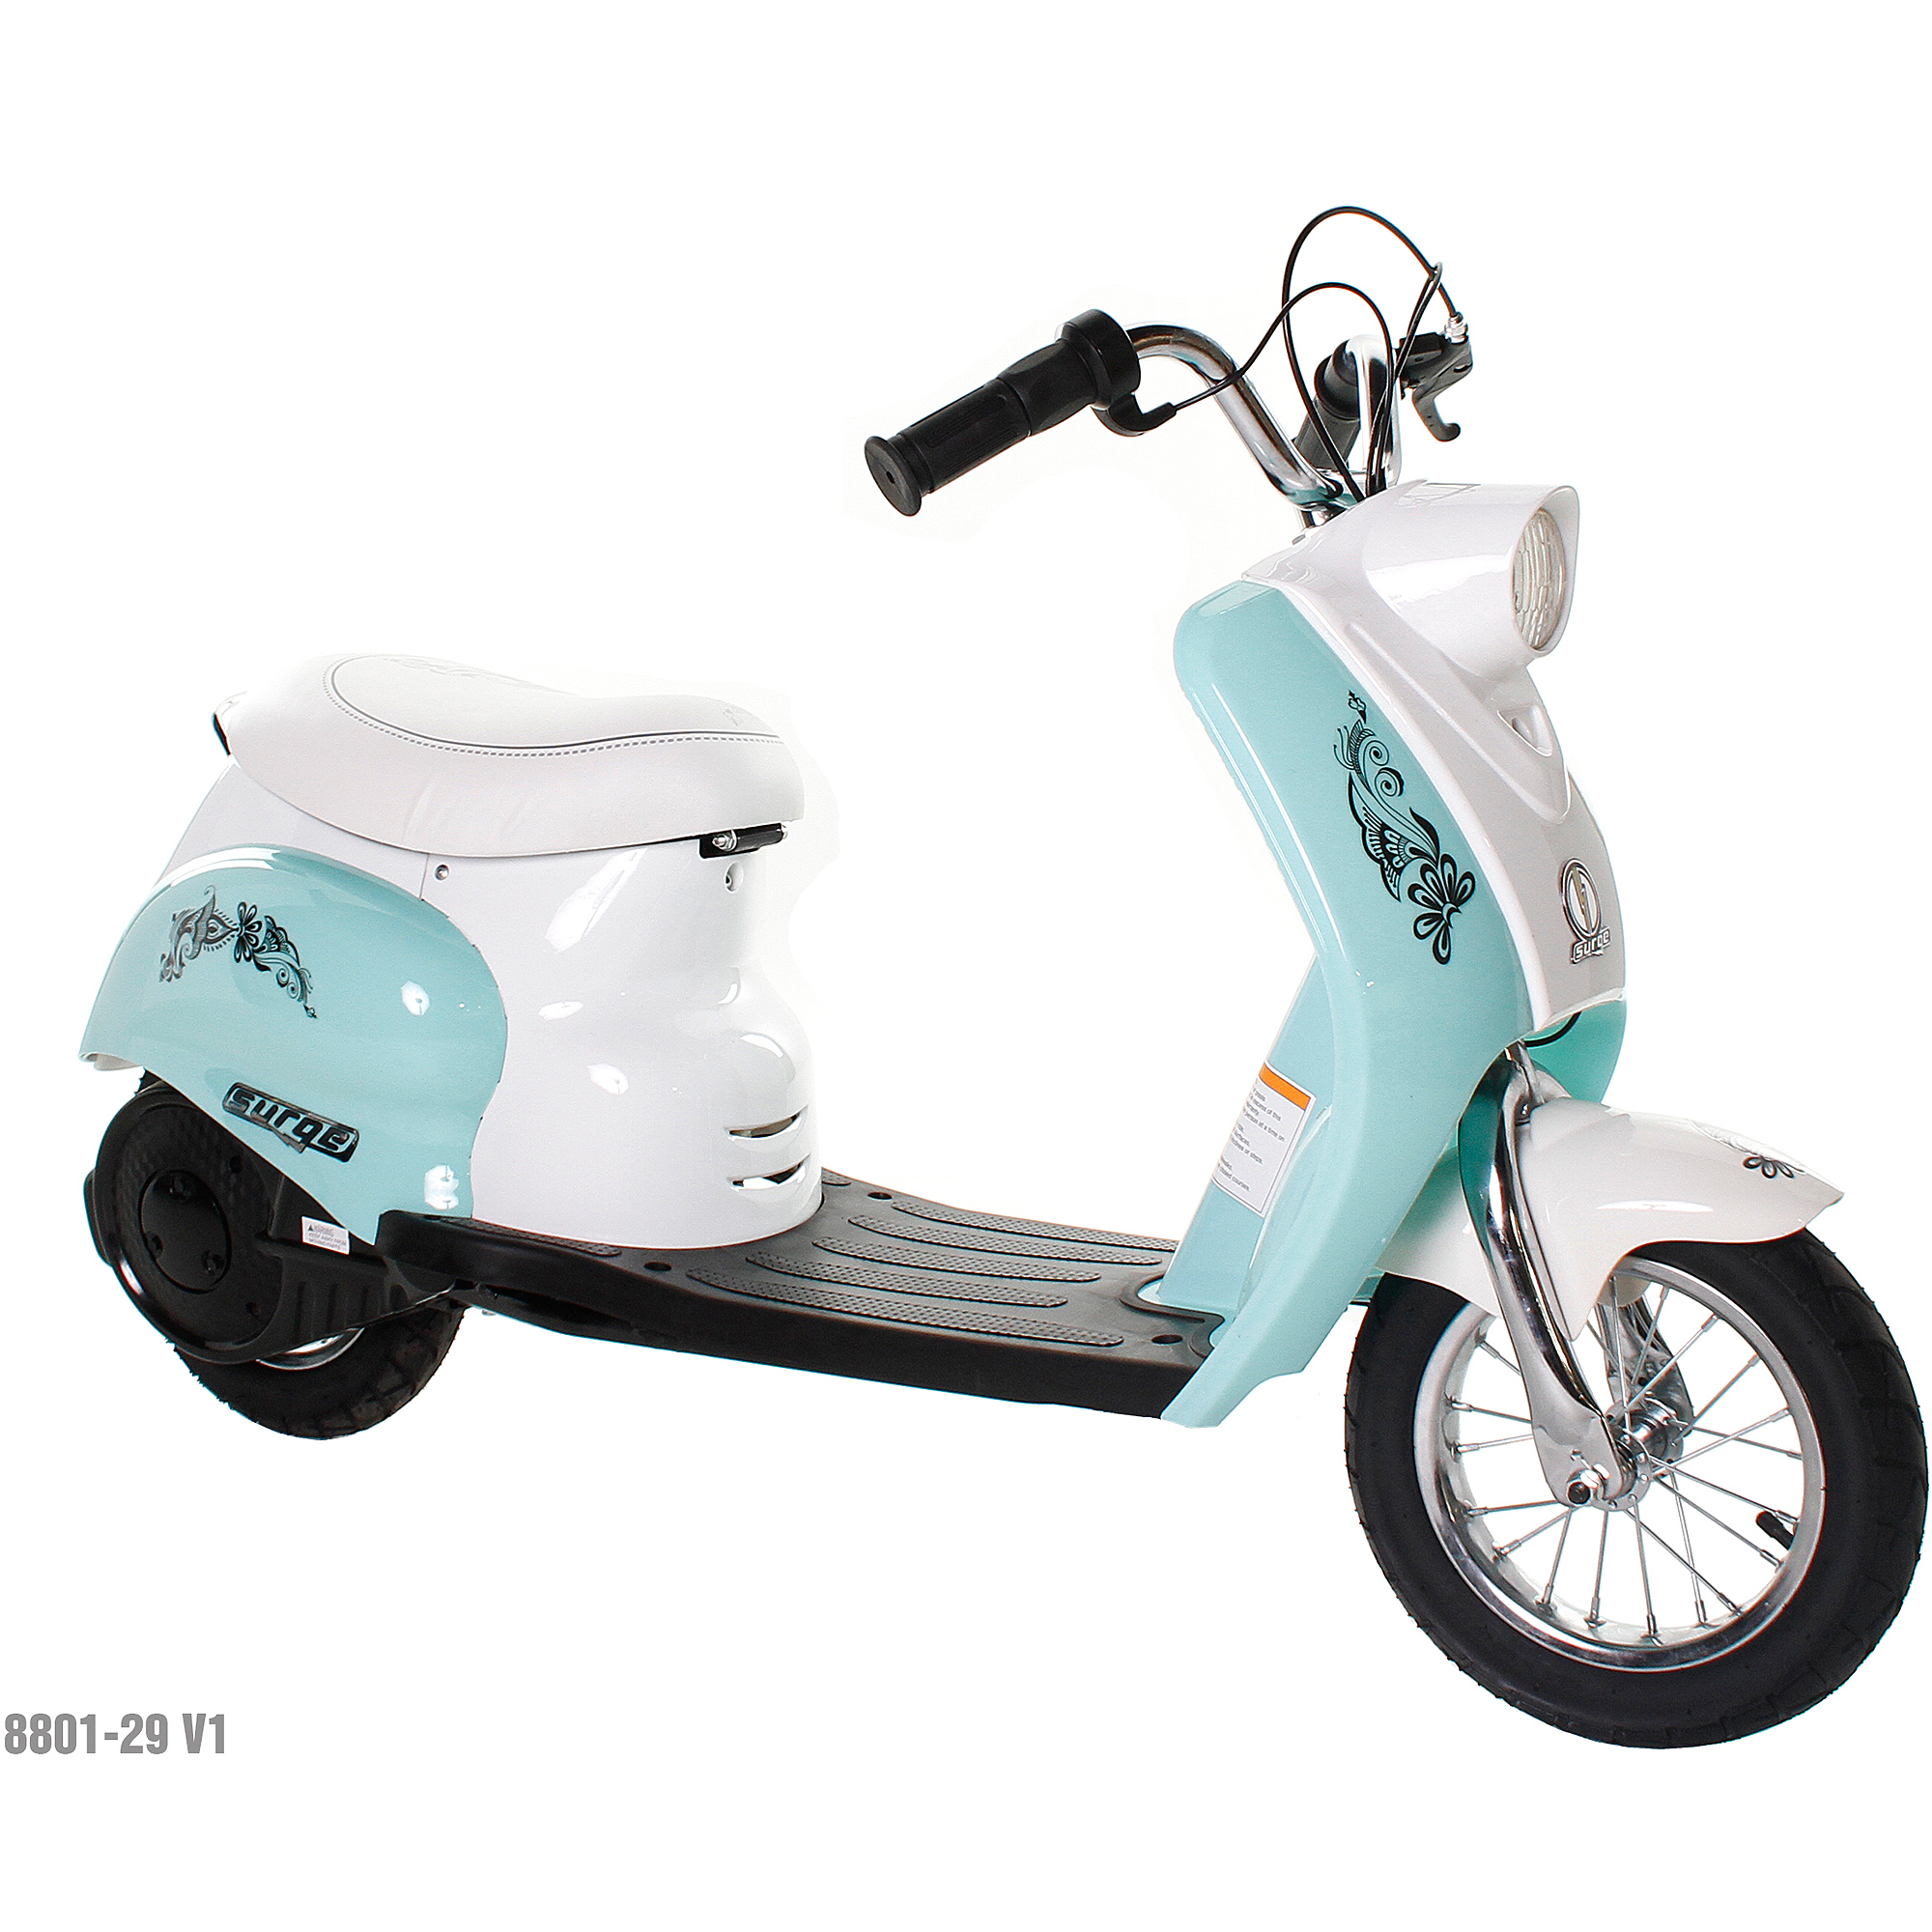 Surge Girls' 24V City Scooter, White/Teal